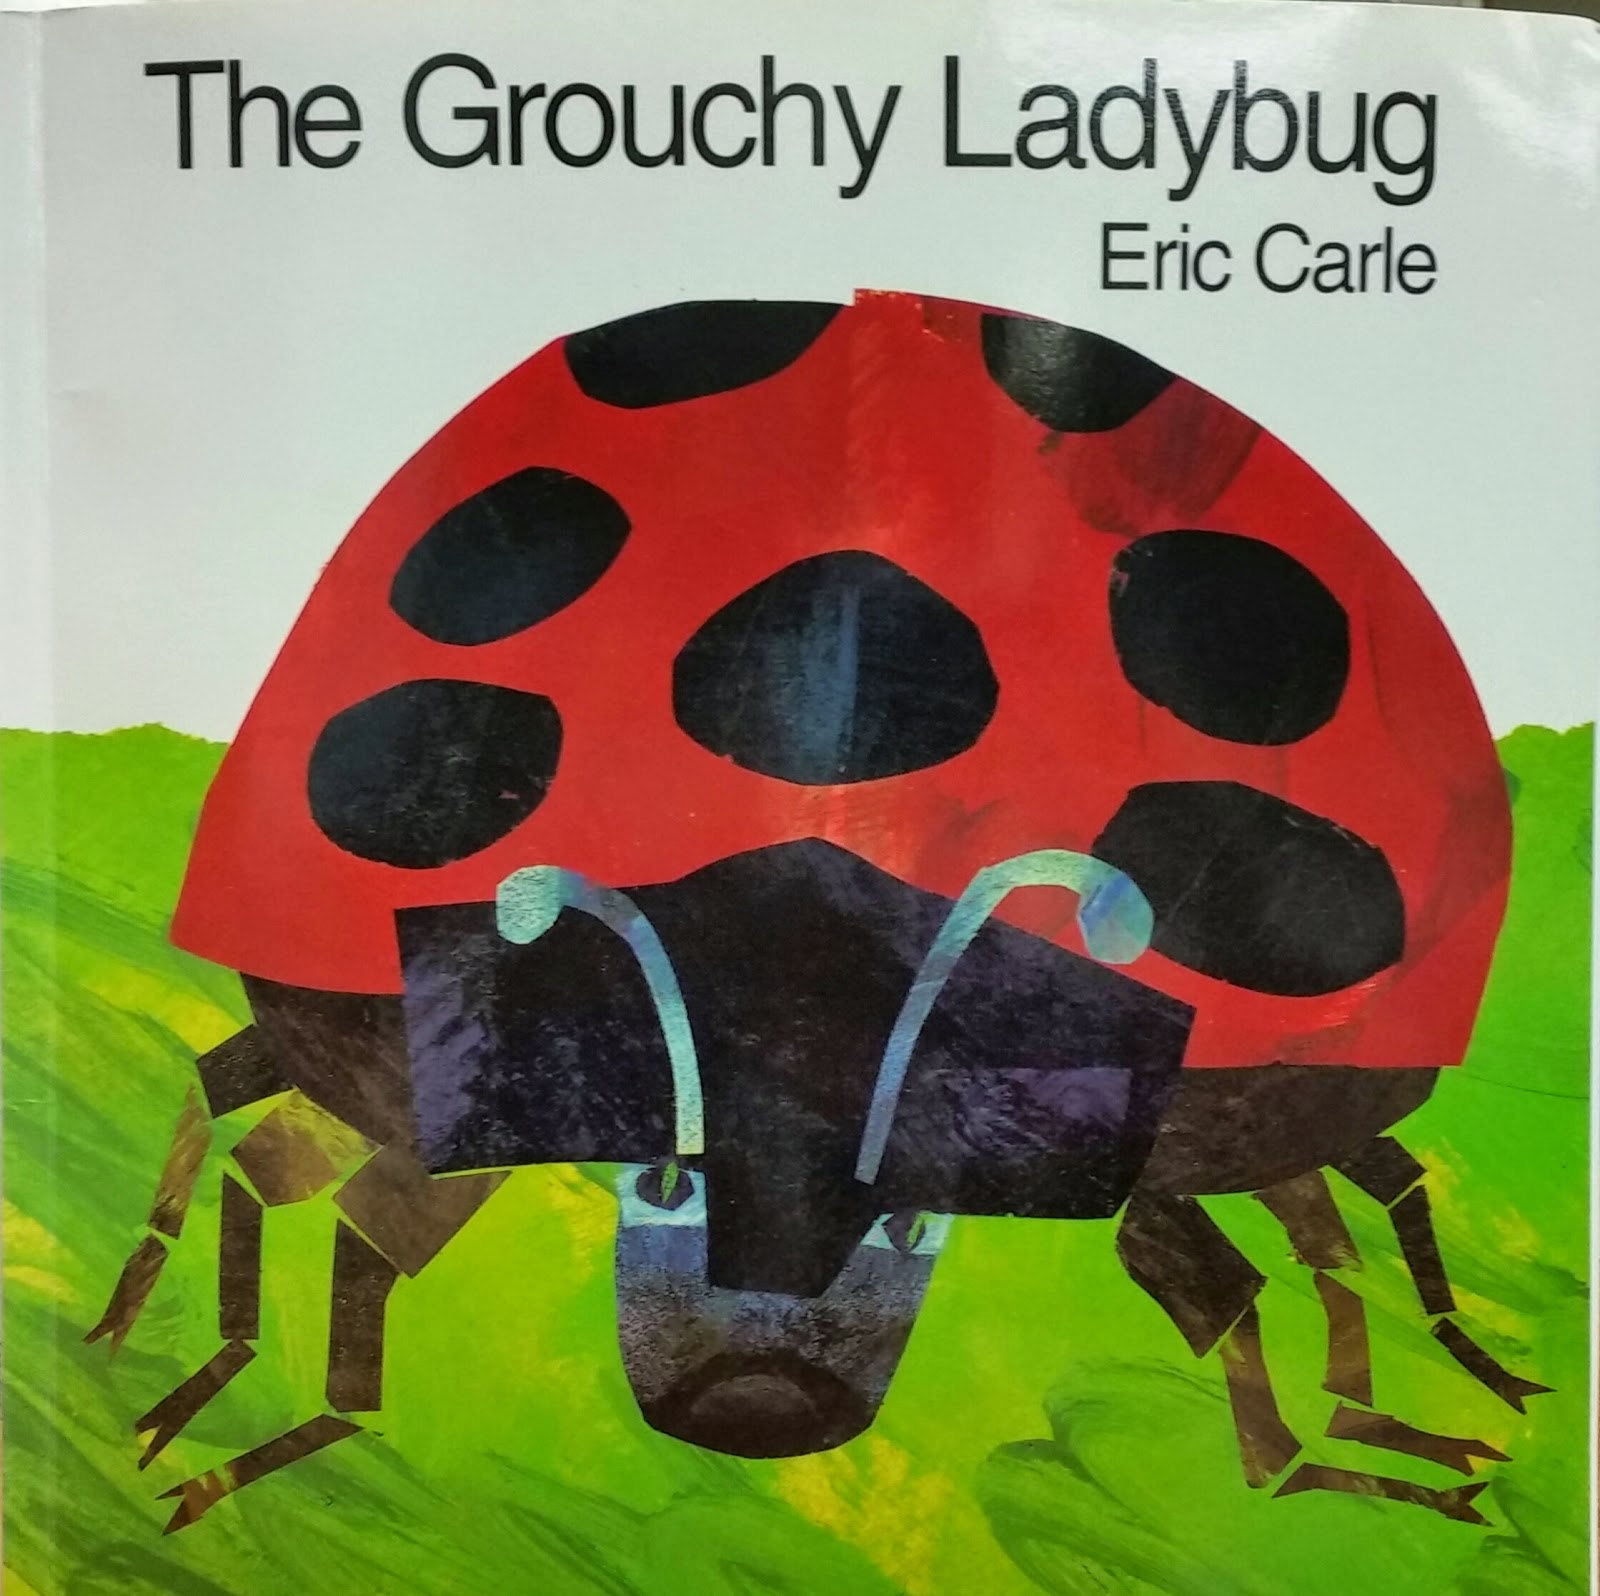 The Grouchy Ladybug By Eric Carle Pictures to Pin on ...